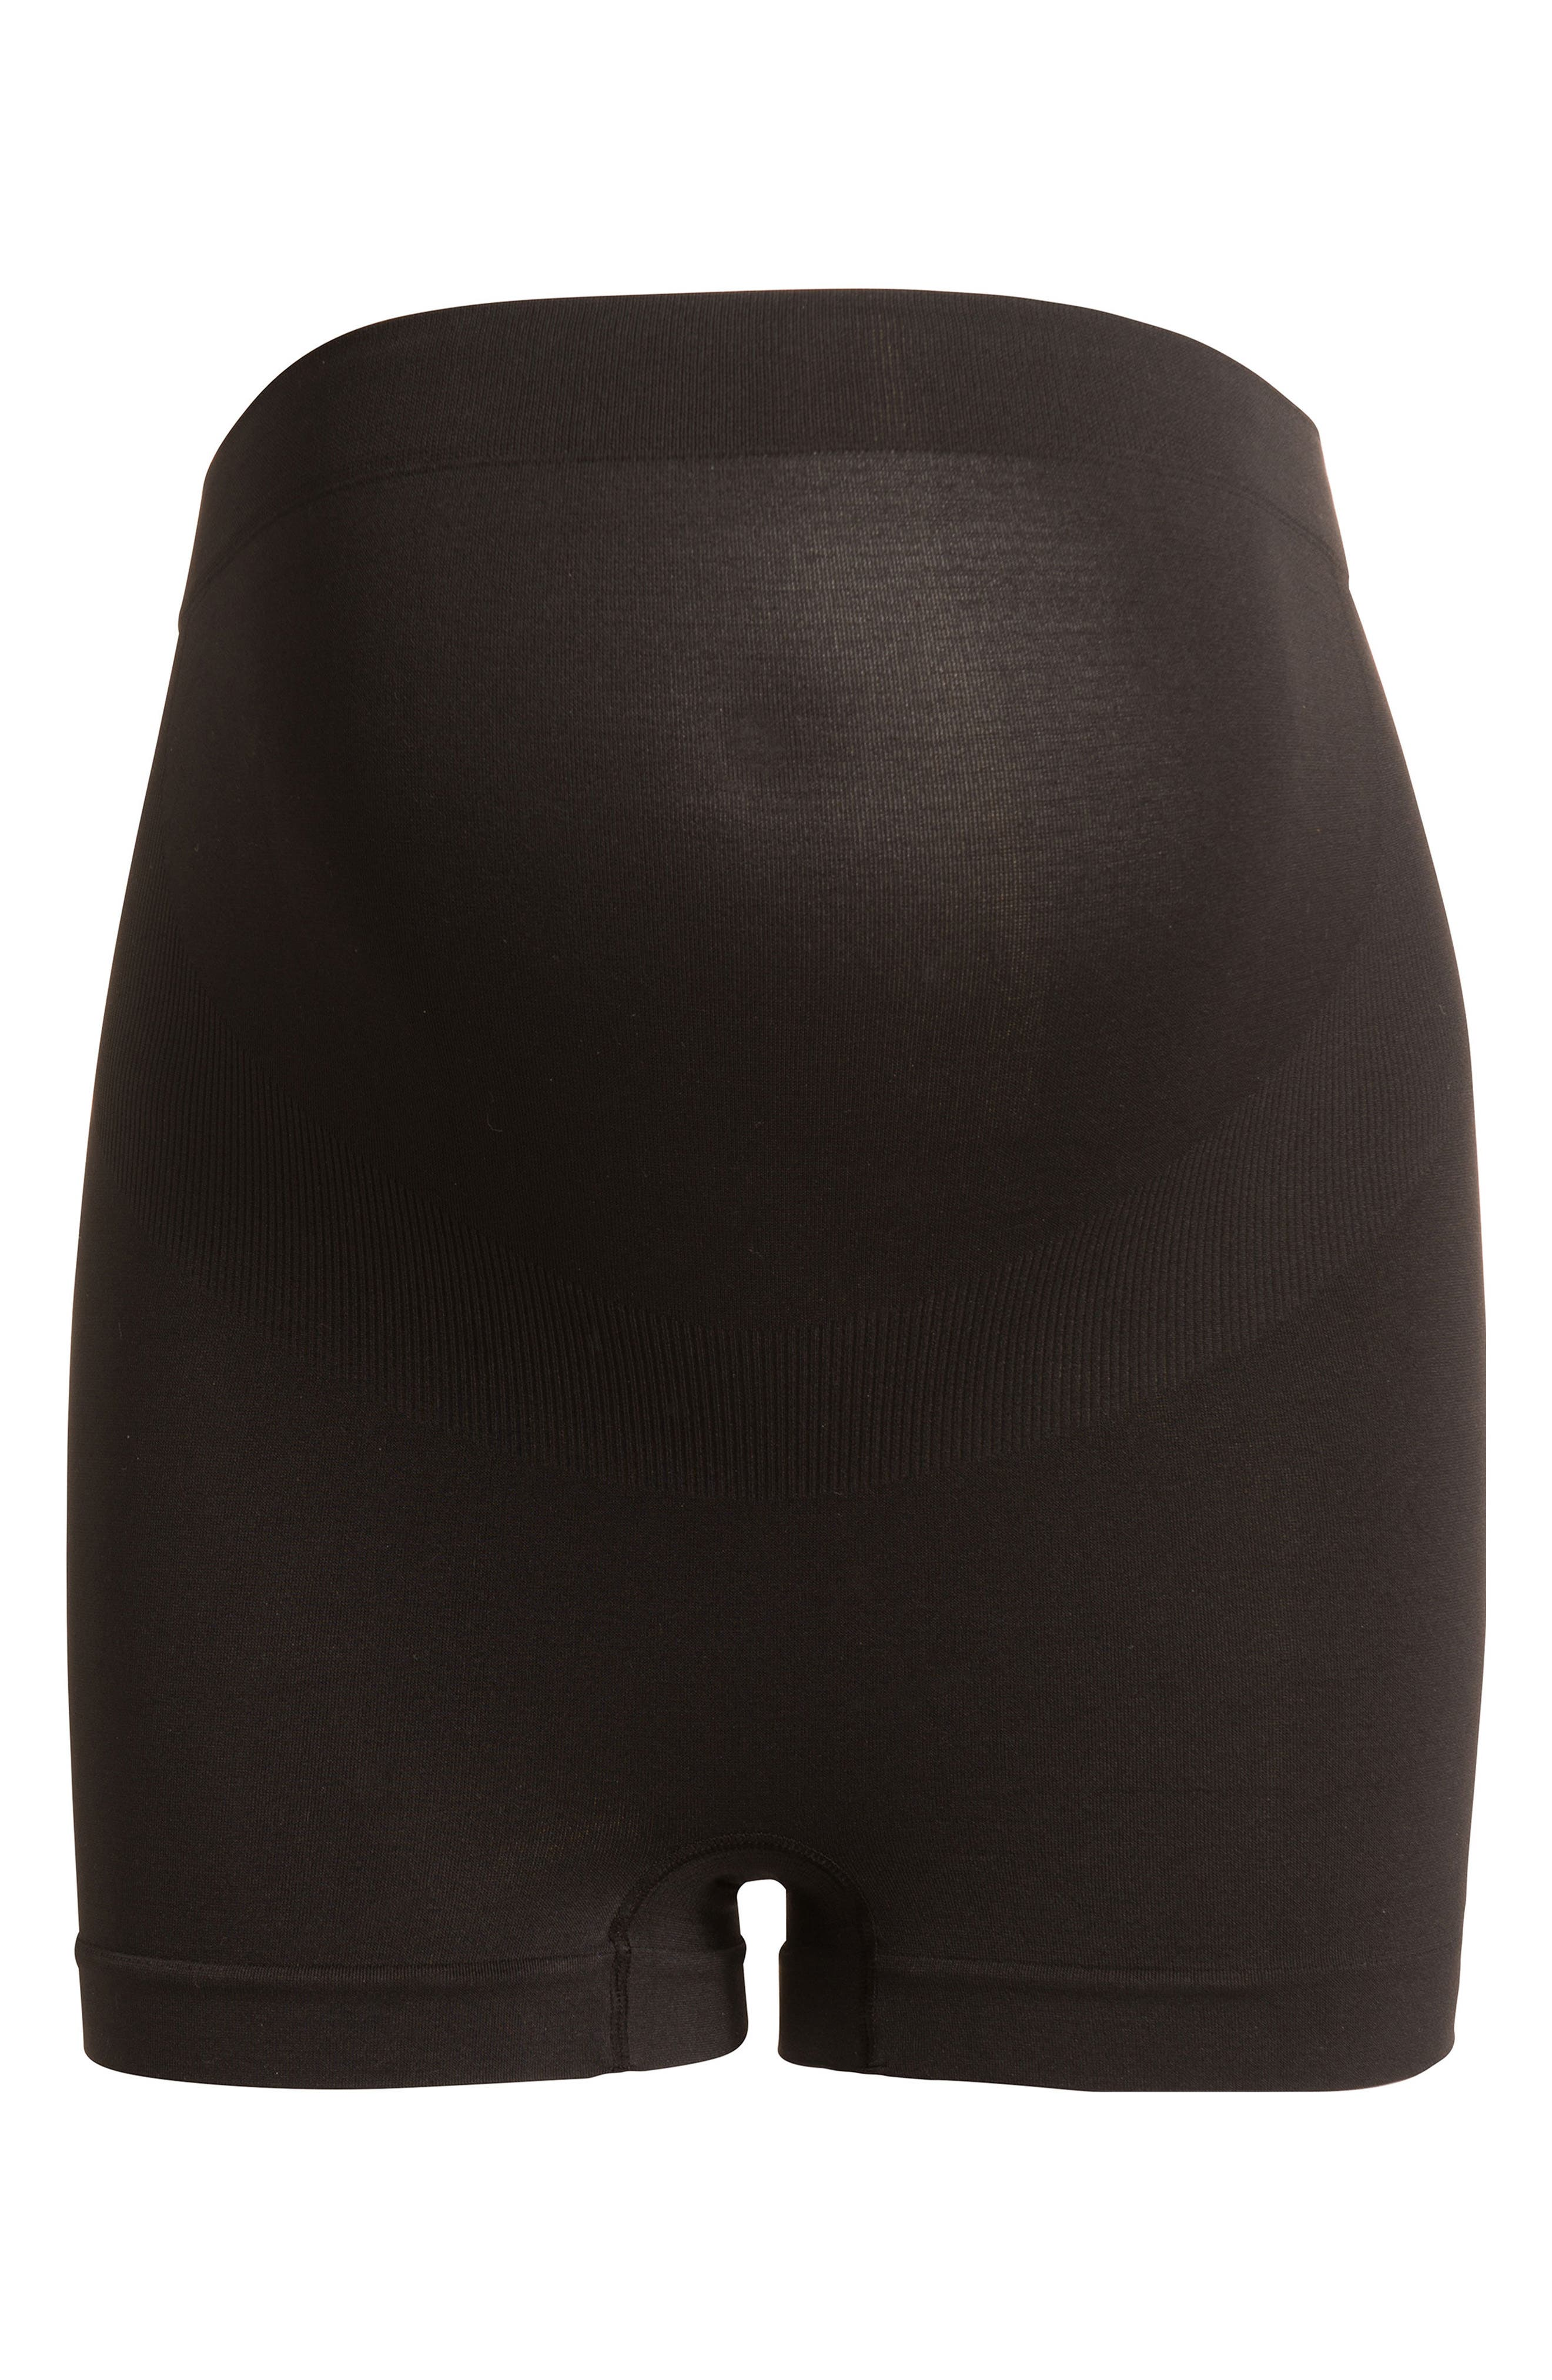 Noppies Seamless Maternity Shorts